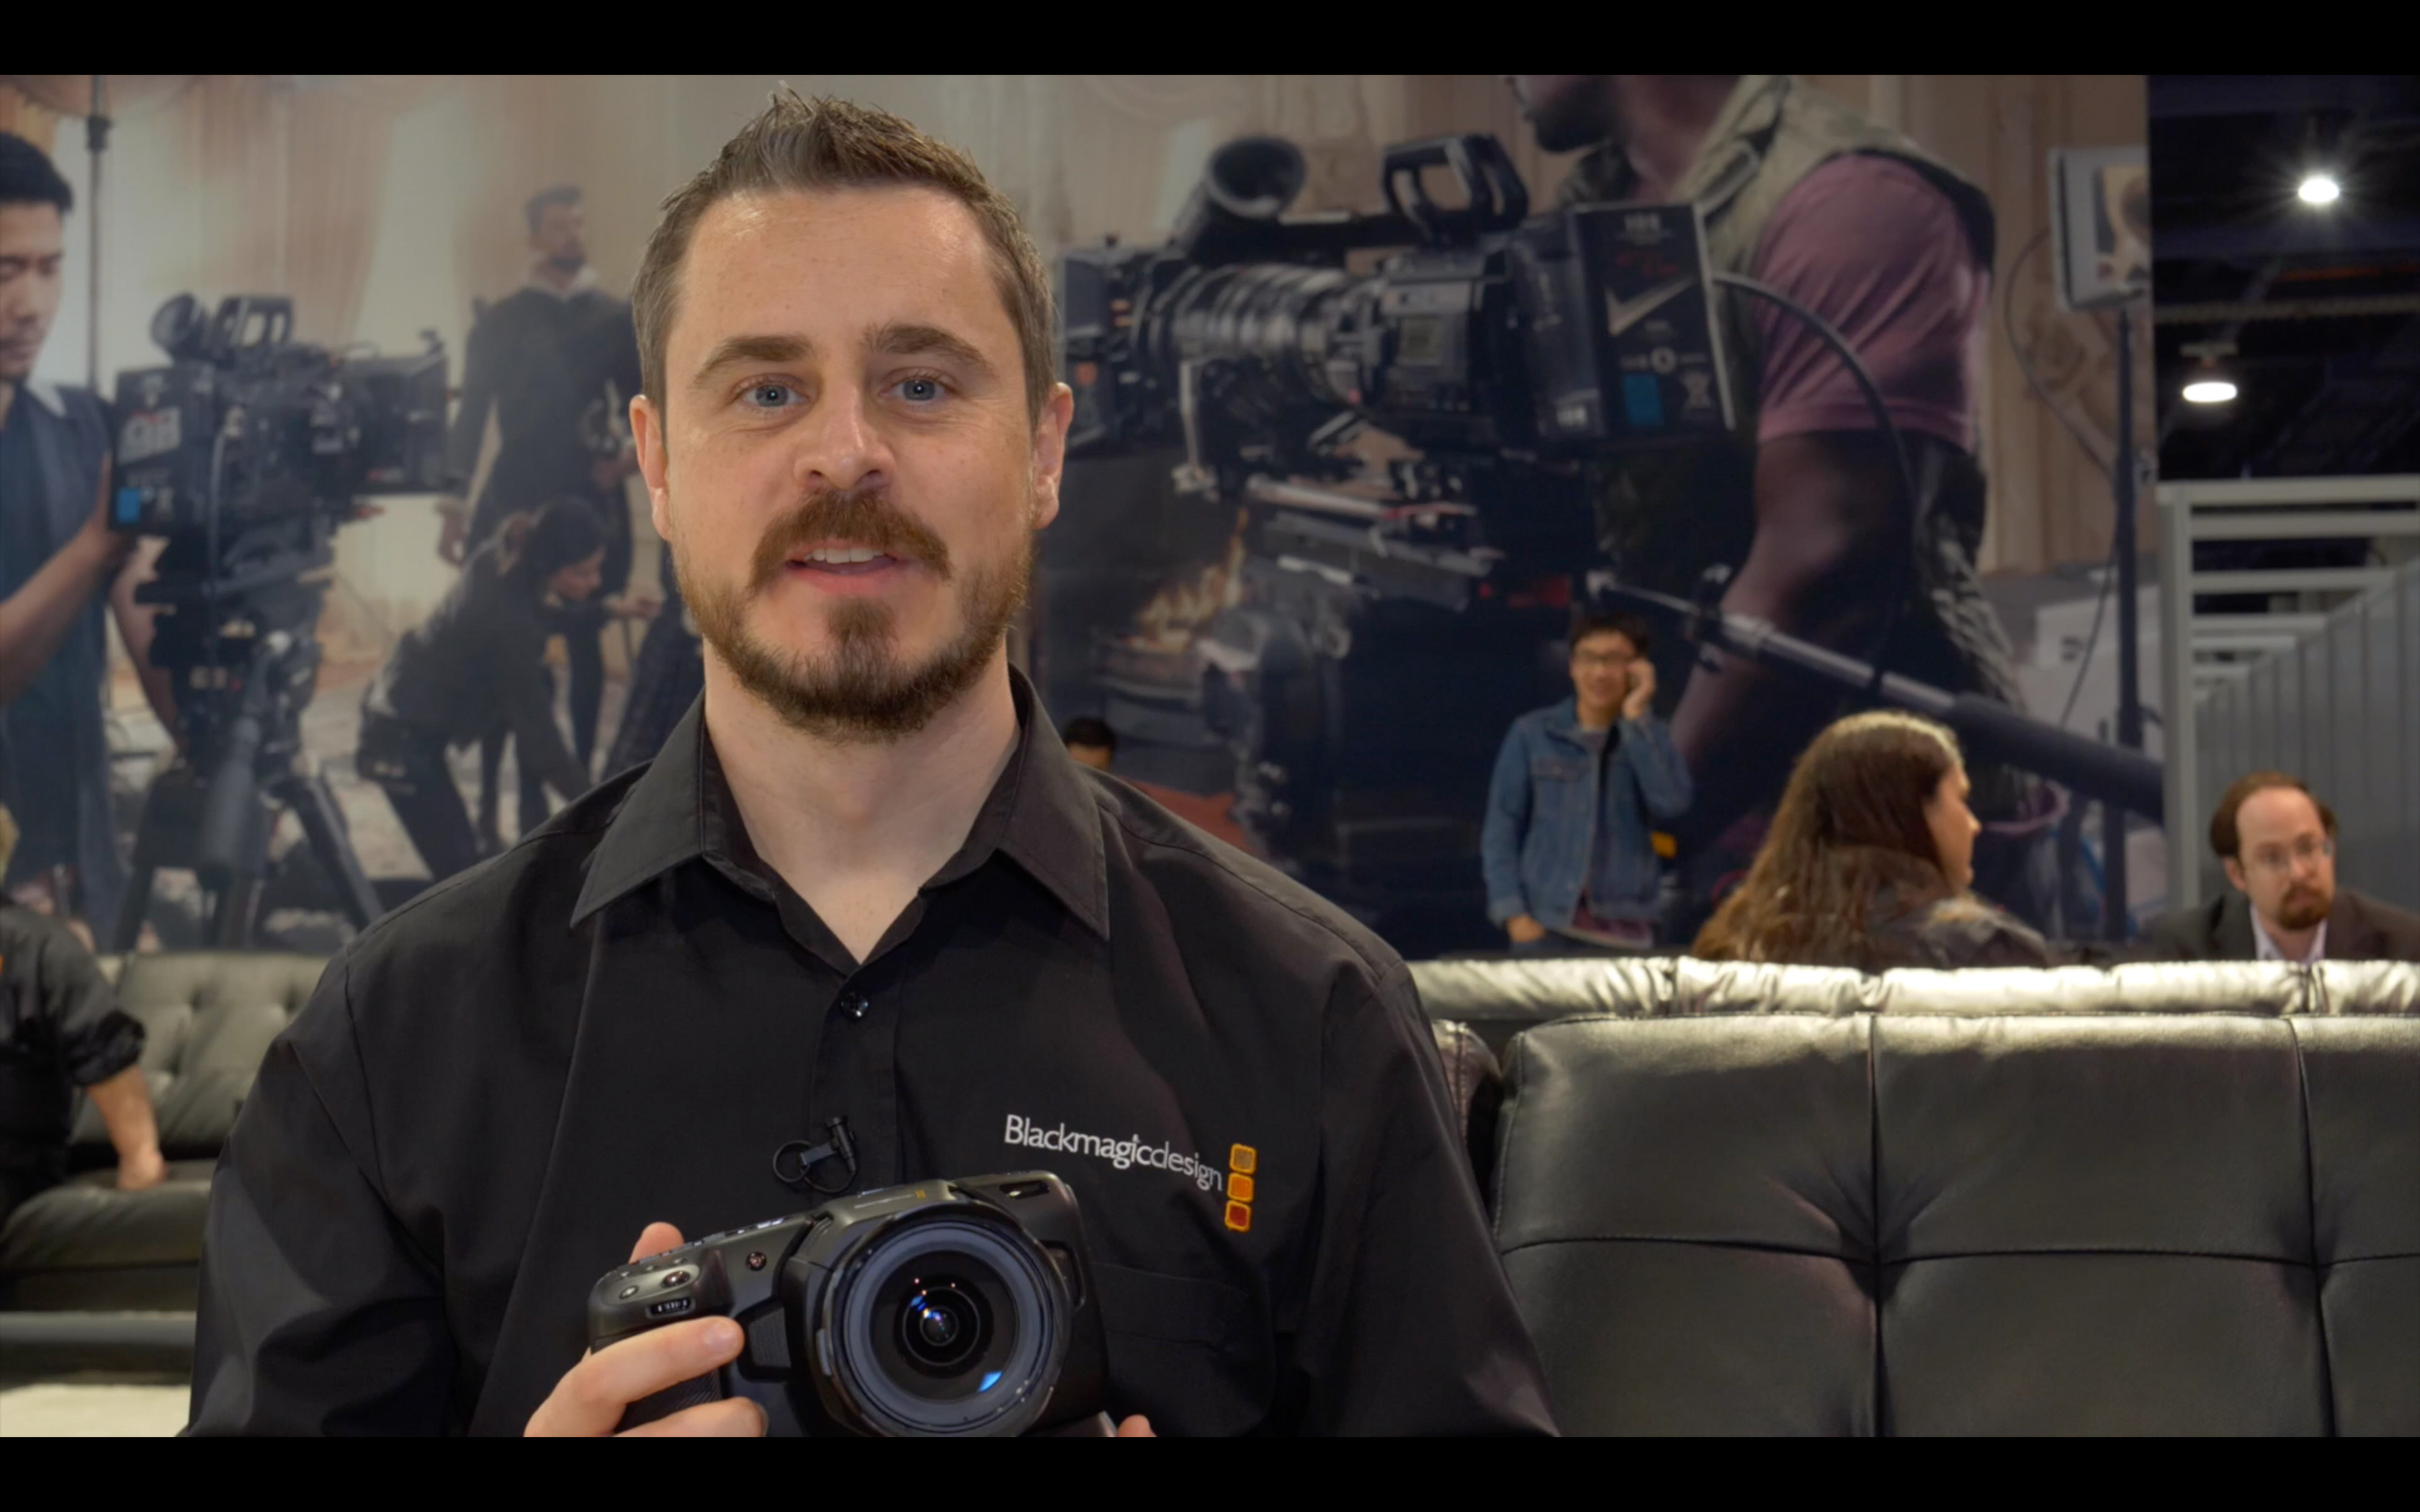 NAB video: Blackmagic Pocket Cinema Camera 4K Battery Handle: Why Sony L-Type Batteries? Charging ti